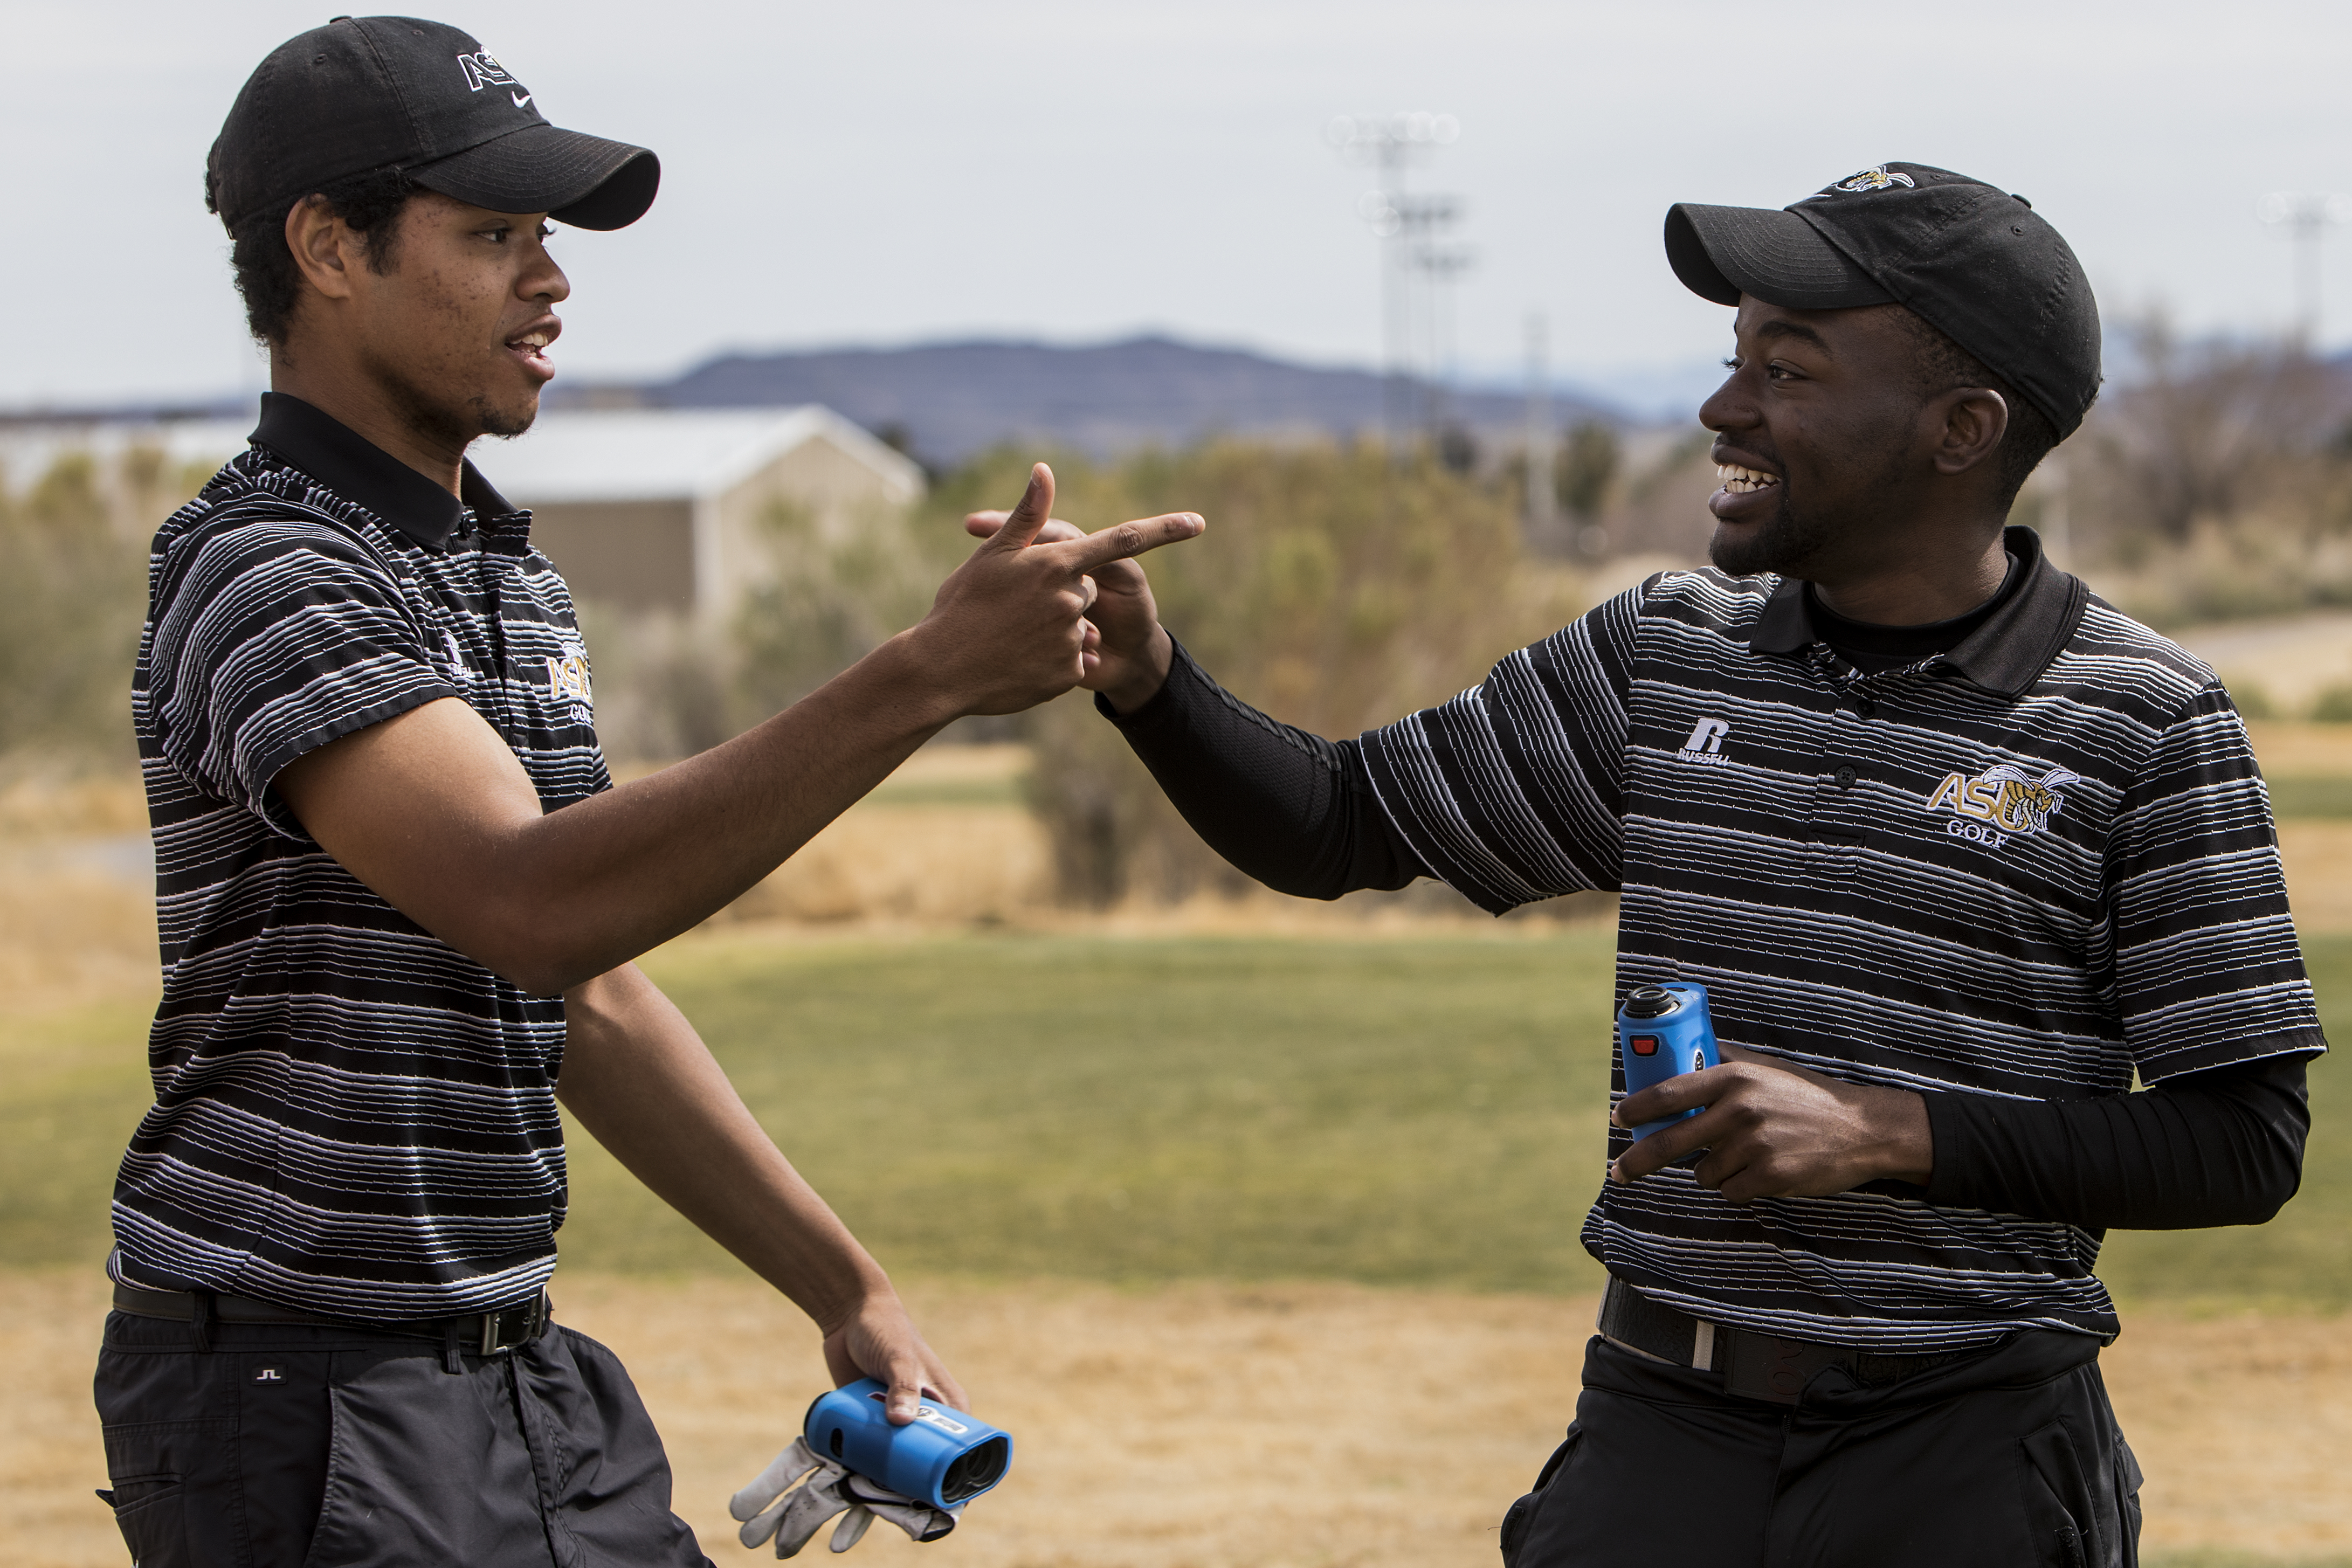 Even at HBCUs, black golfers are in the minority